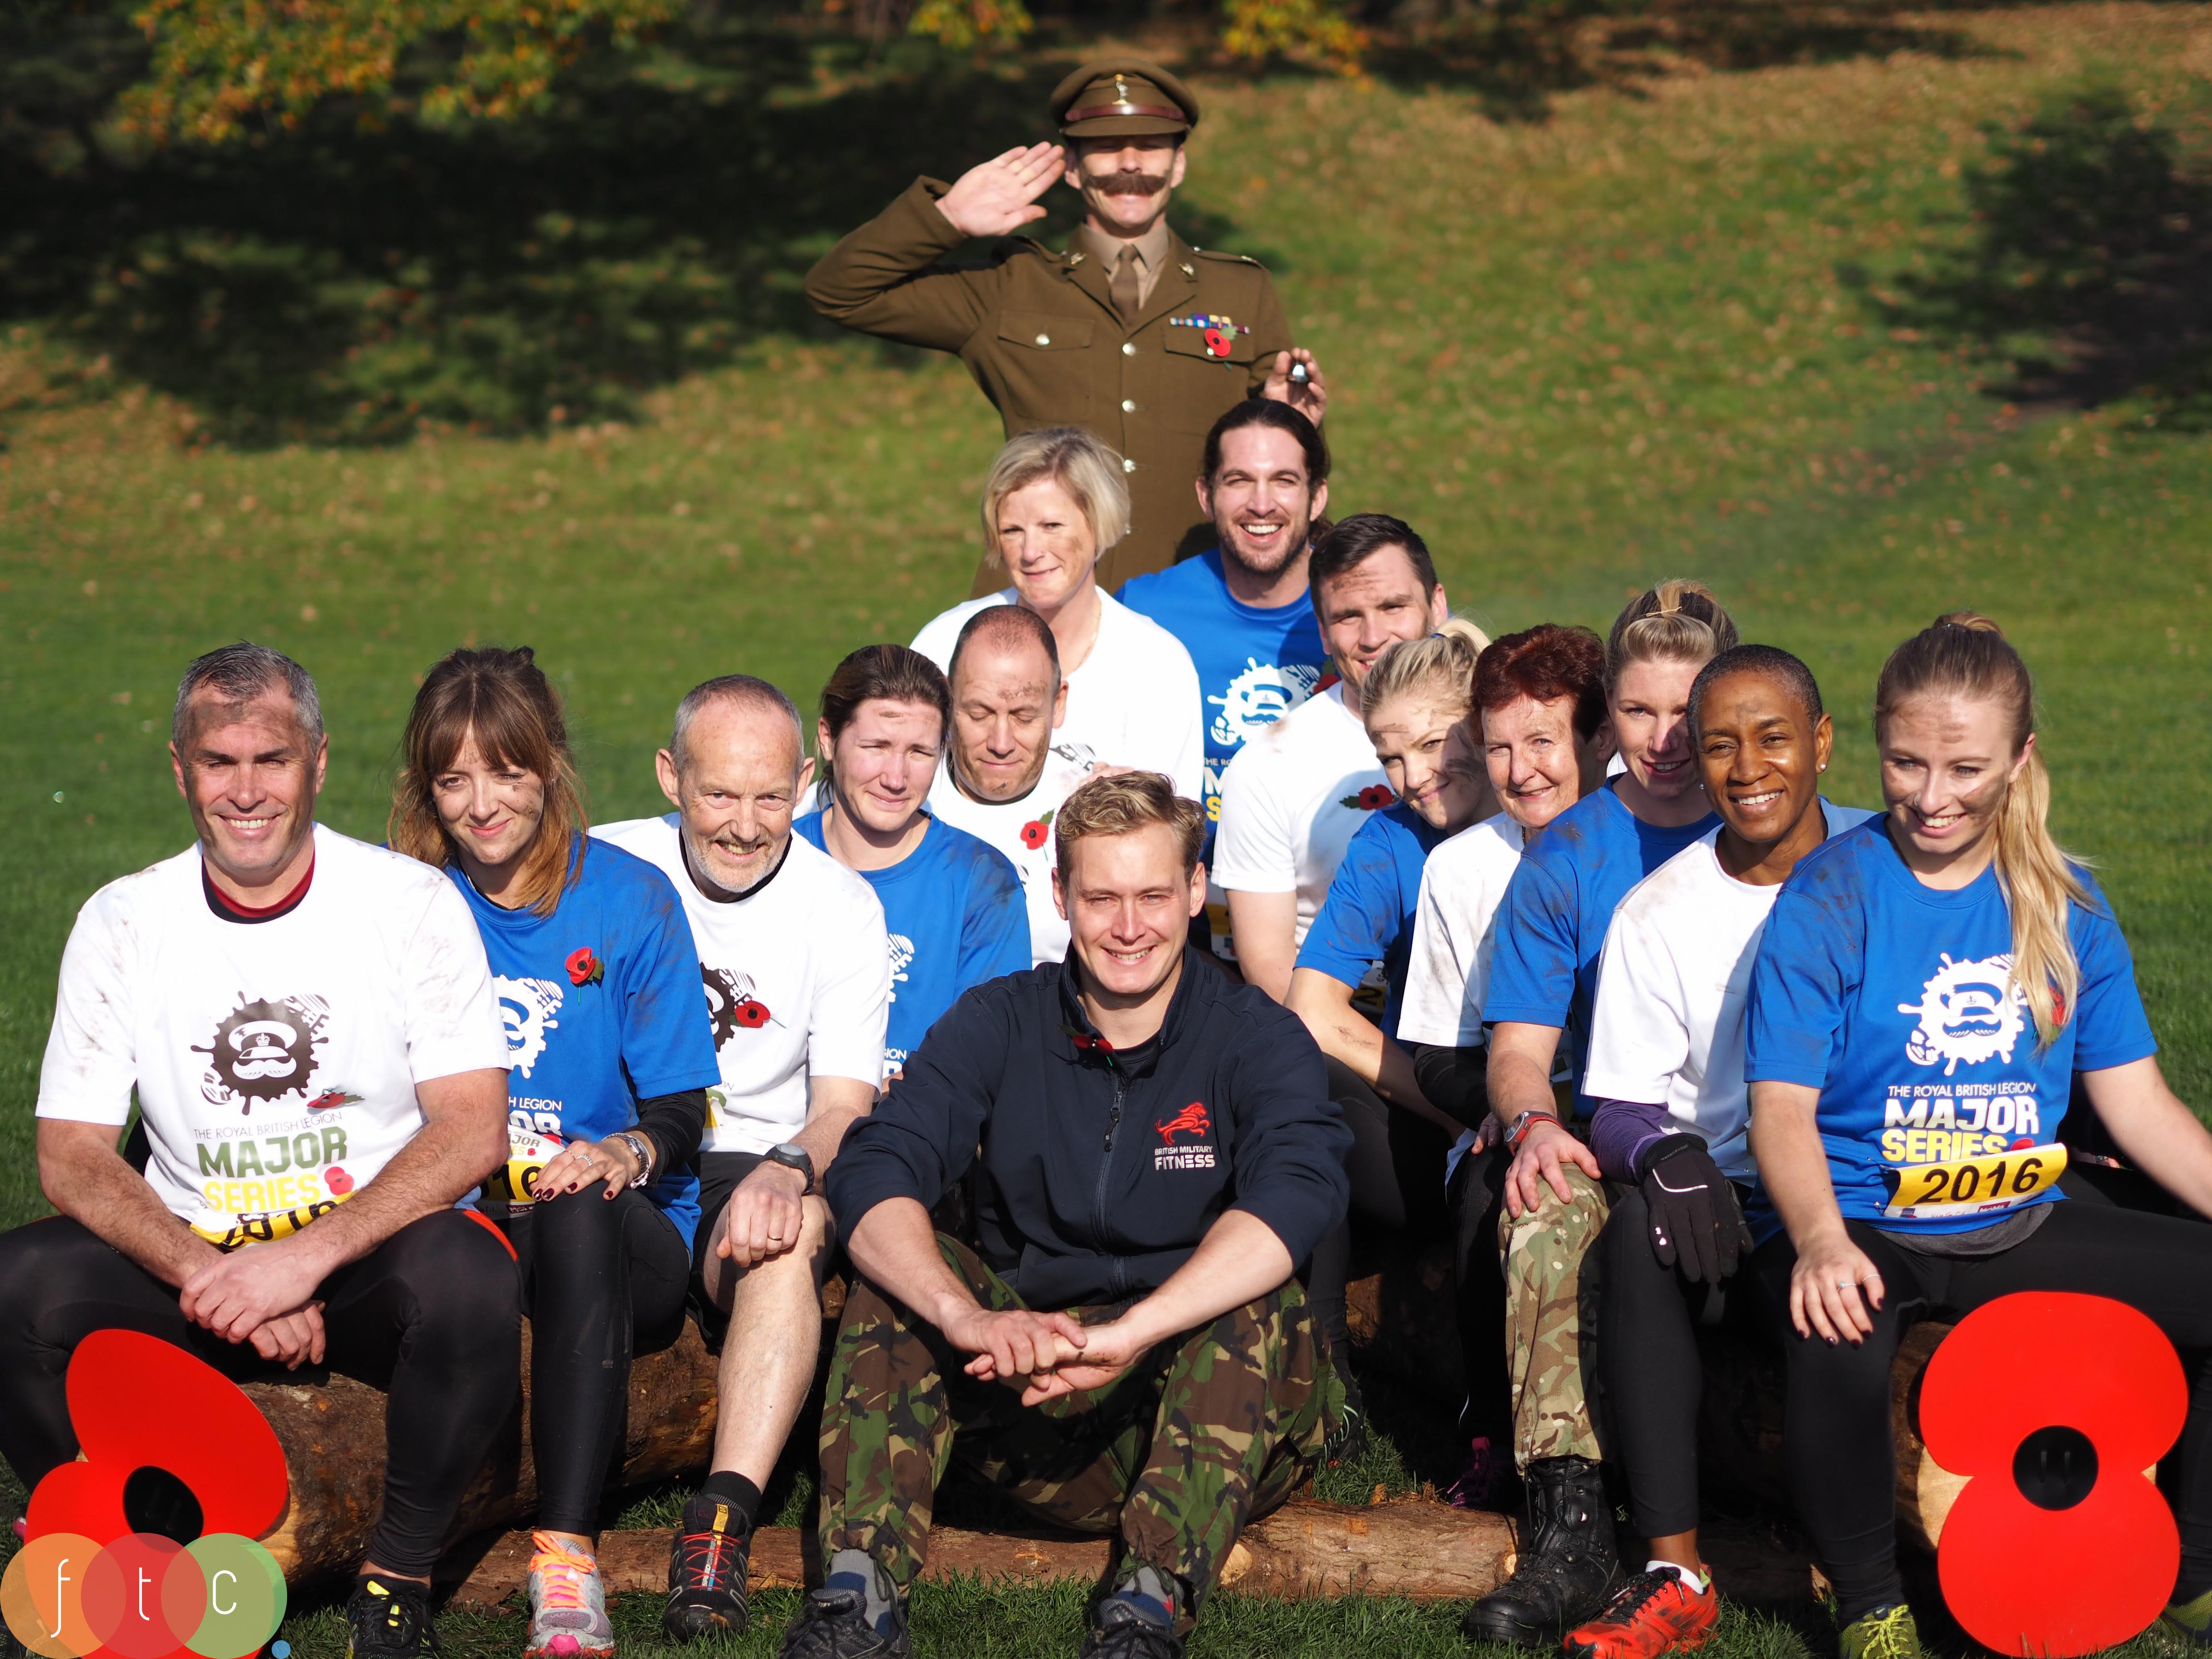 Race Director of The Royal British Legion Major Series with the Major and his troops